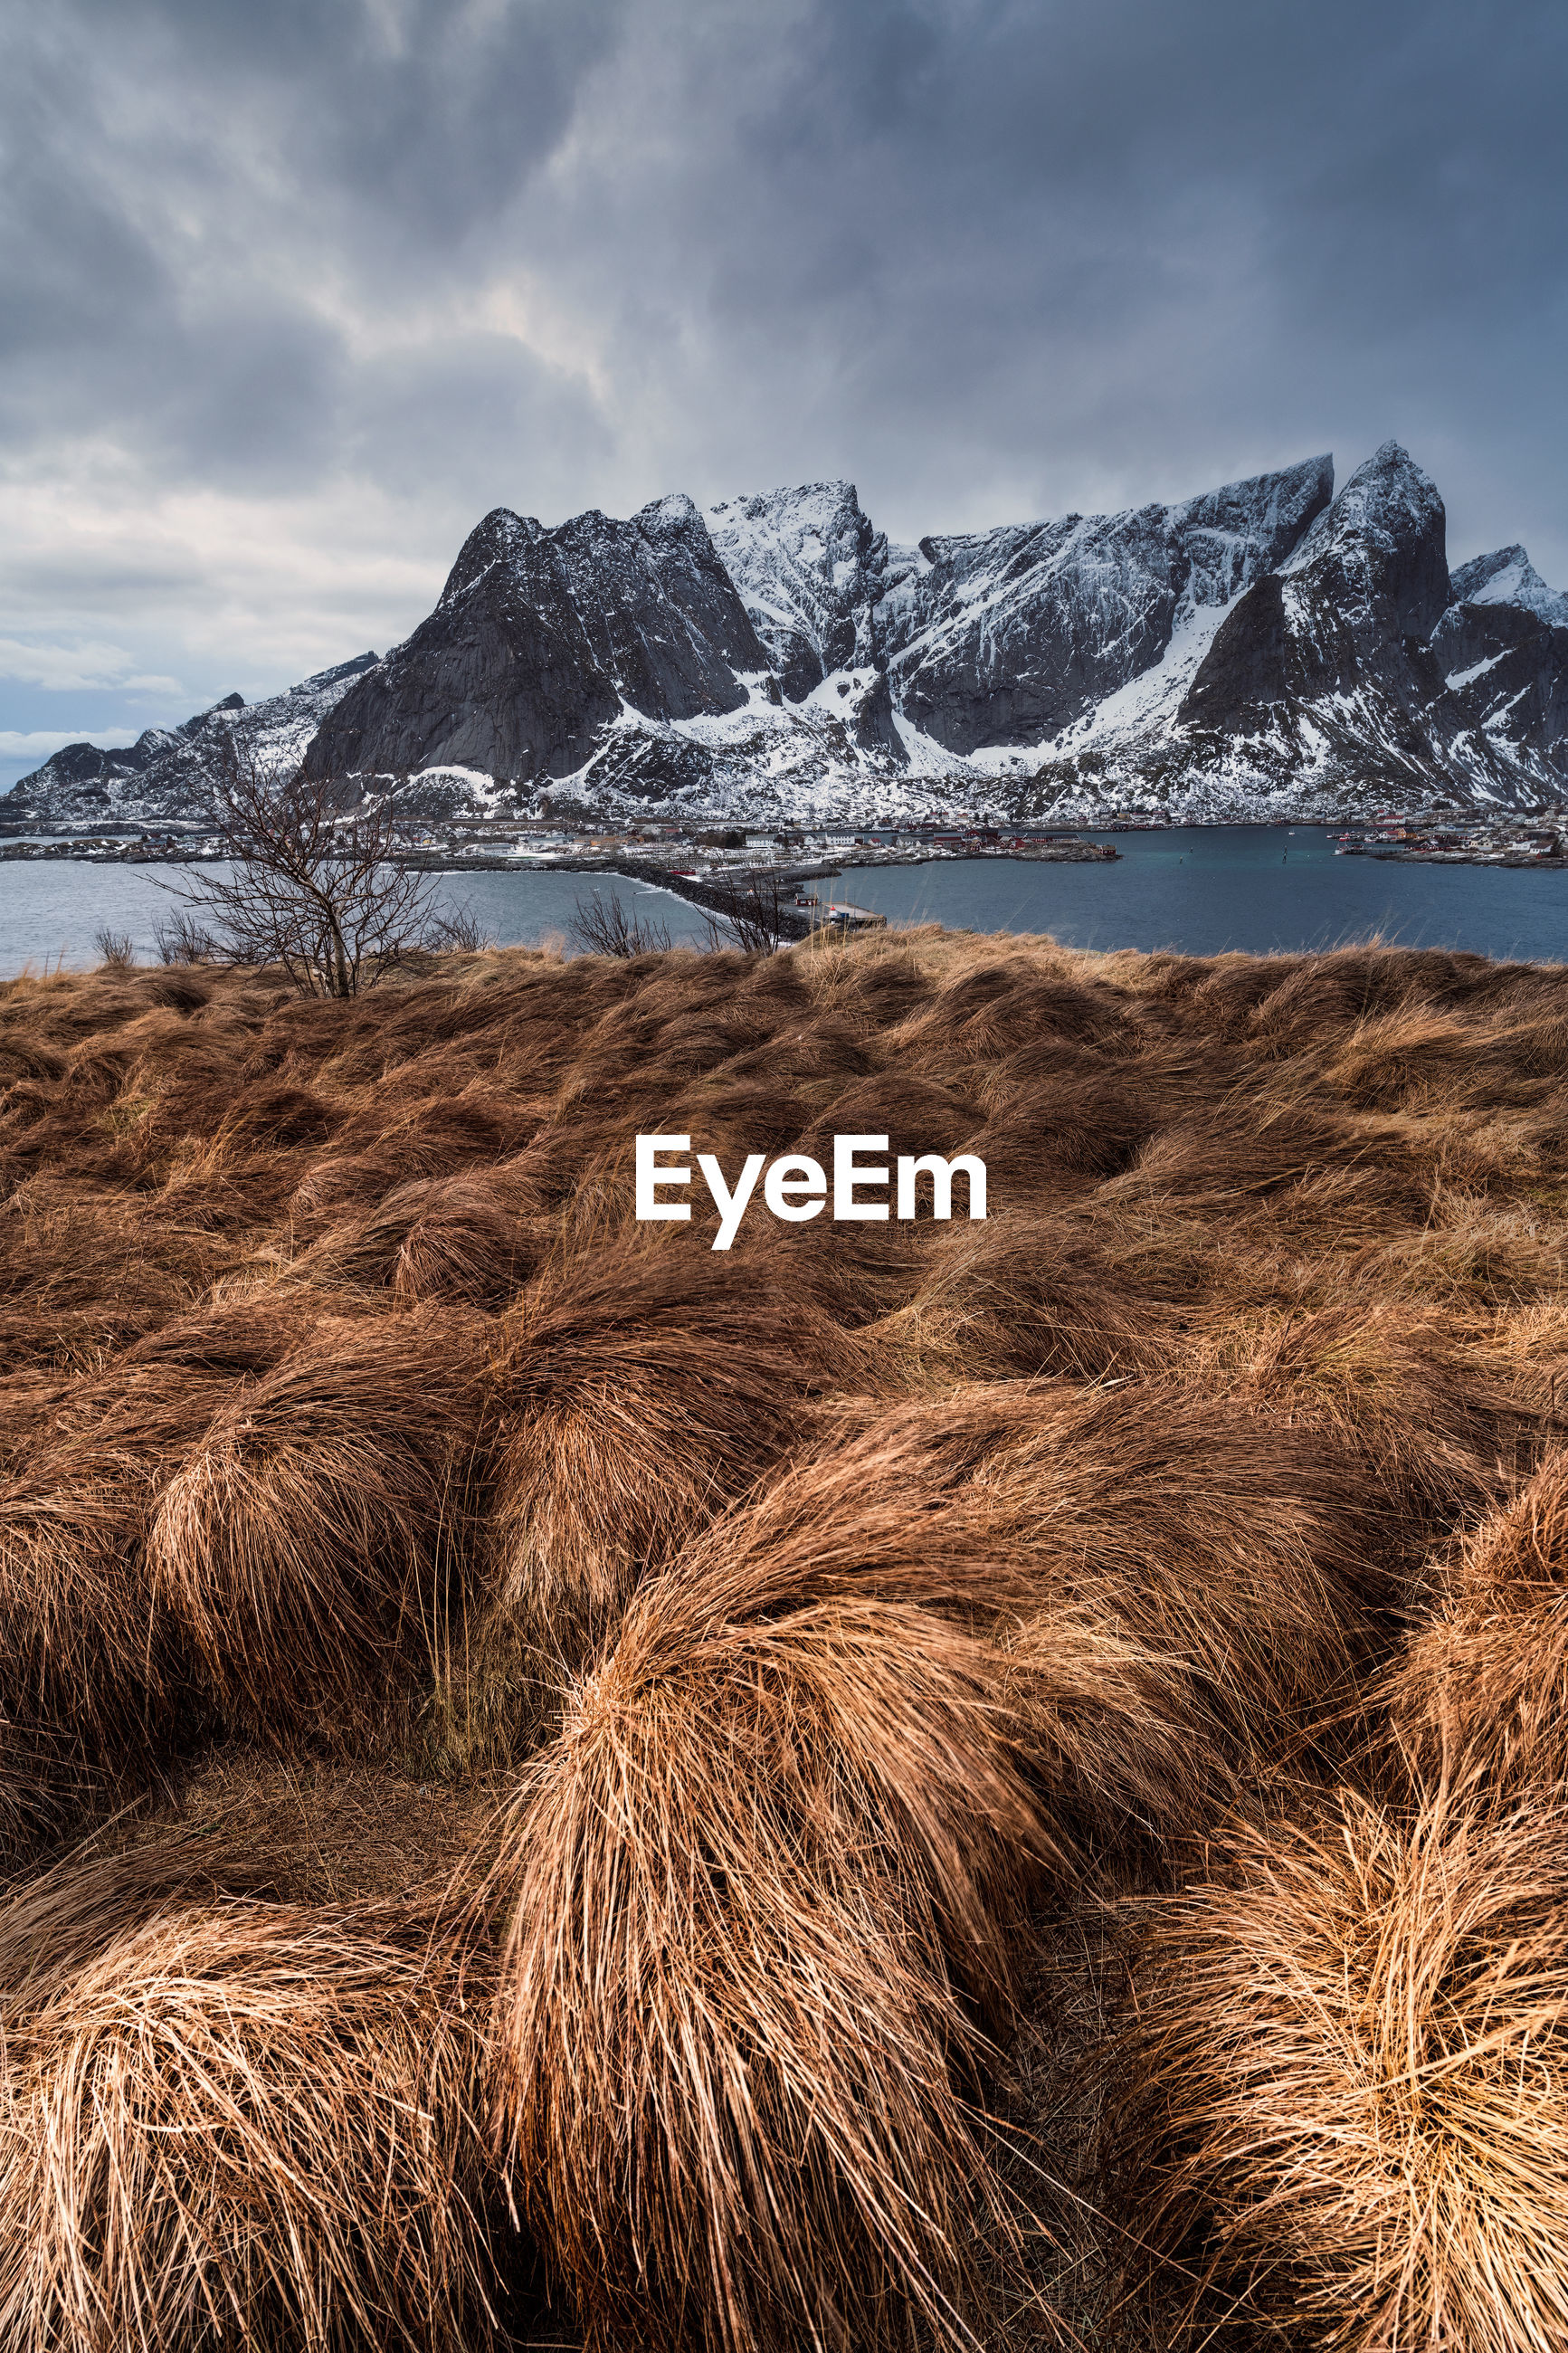 Dried grassy field by river with mountains in background